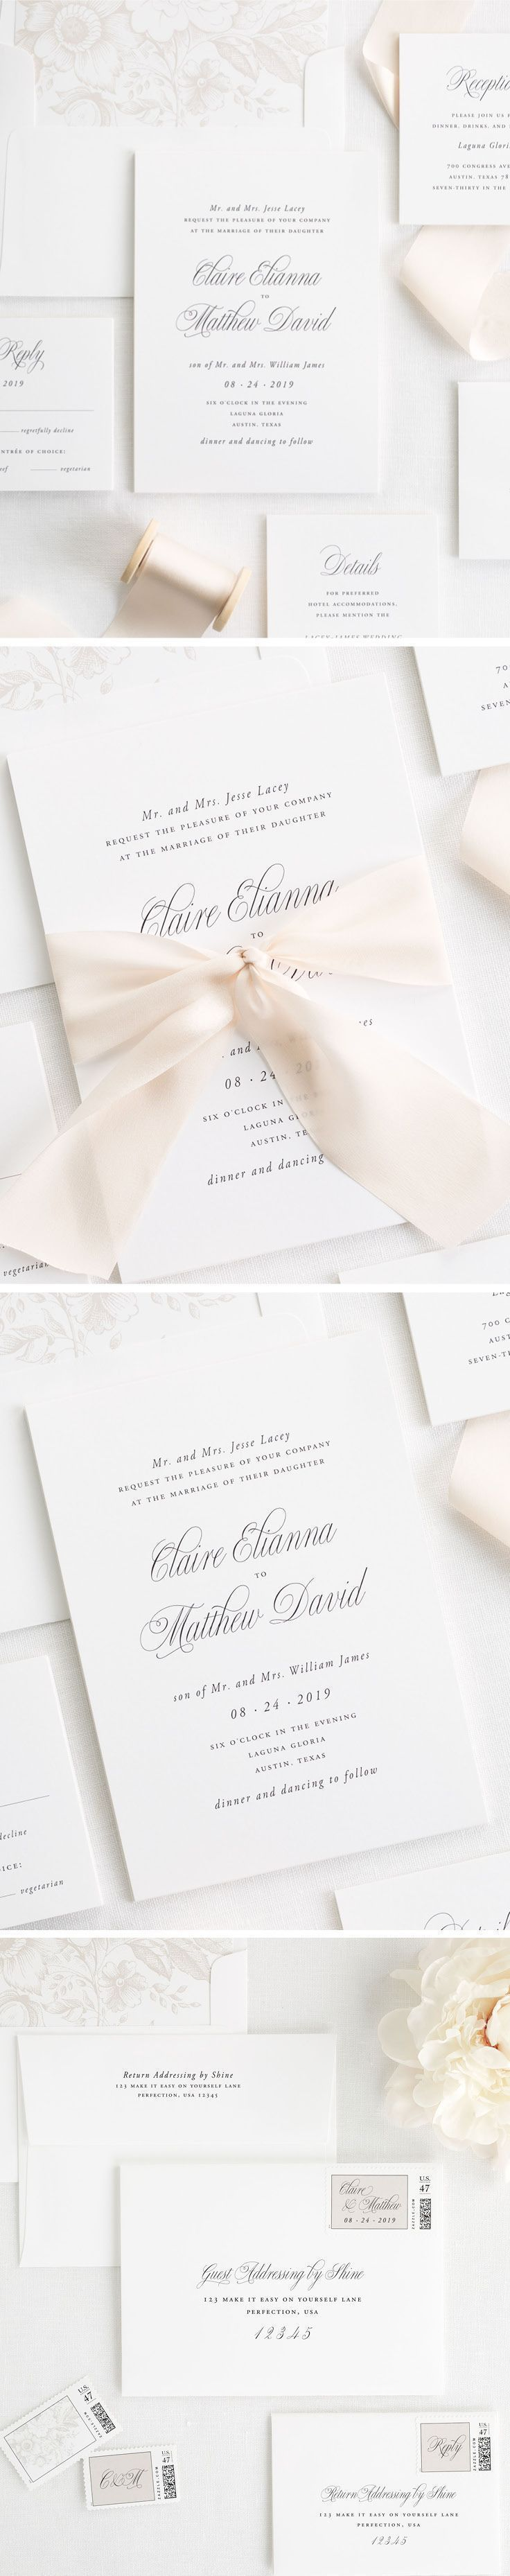 98 best All White Wedding images on Pinterest | Weddings, White ...